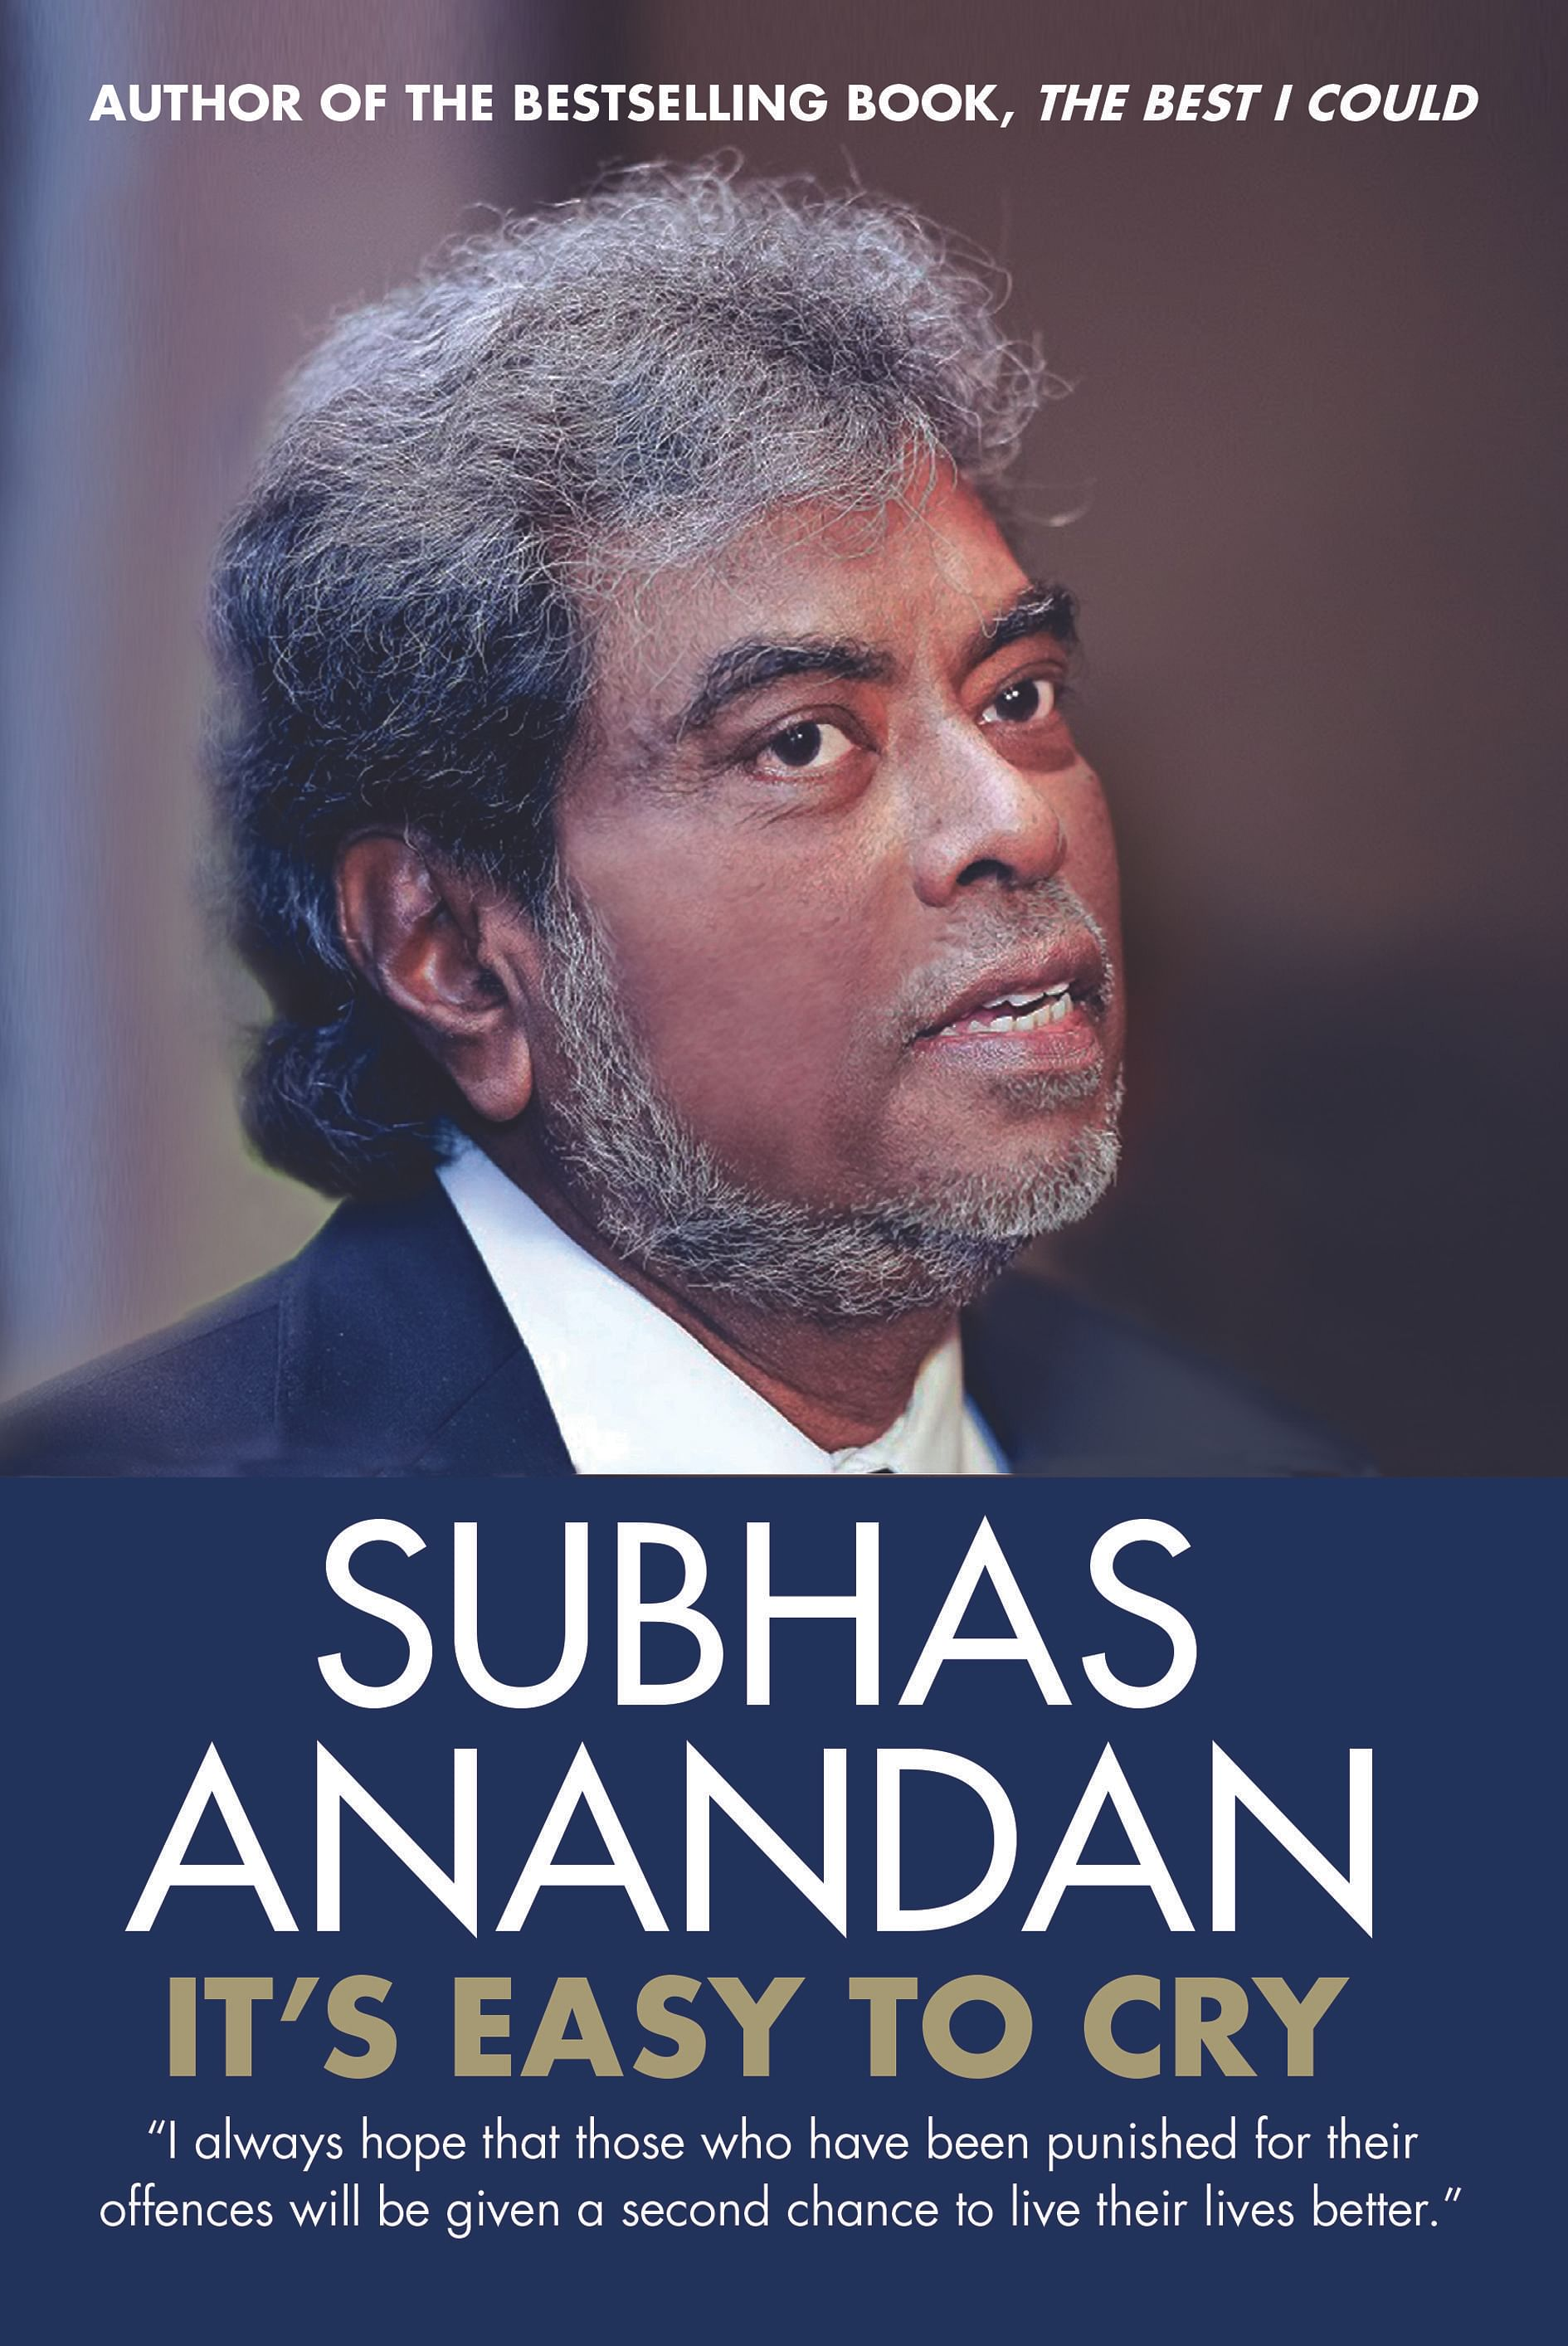 The late Subhas Anandan's second book will hit bookstores next month.